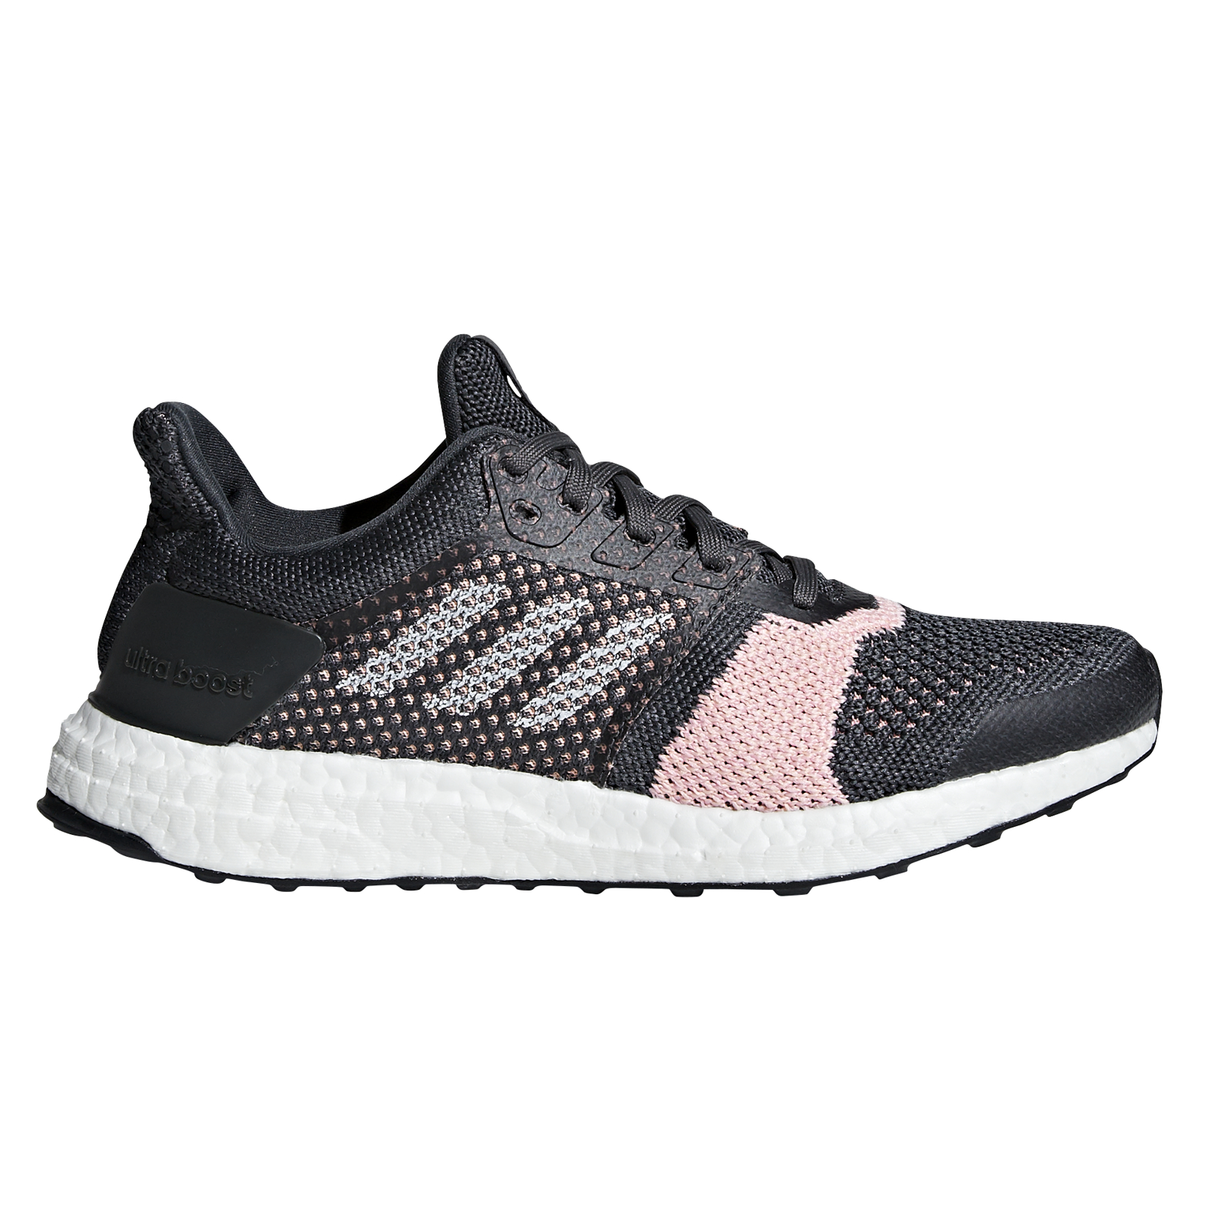 ad9407166da33 Adidas Ultra boost ST - Womens Running Shoes - Carbon Cloud White Pink